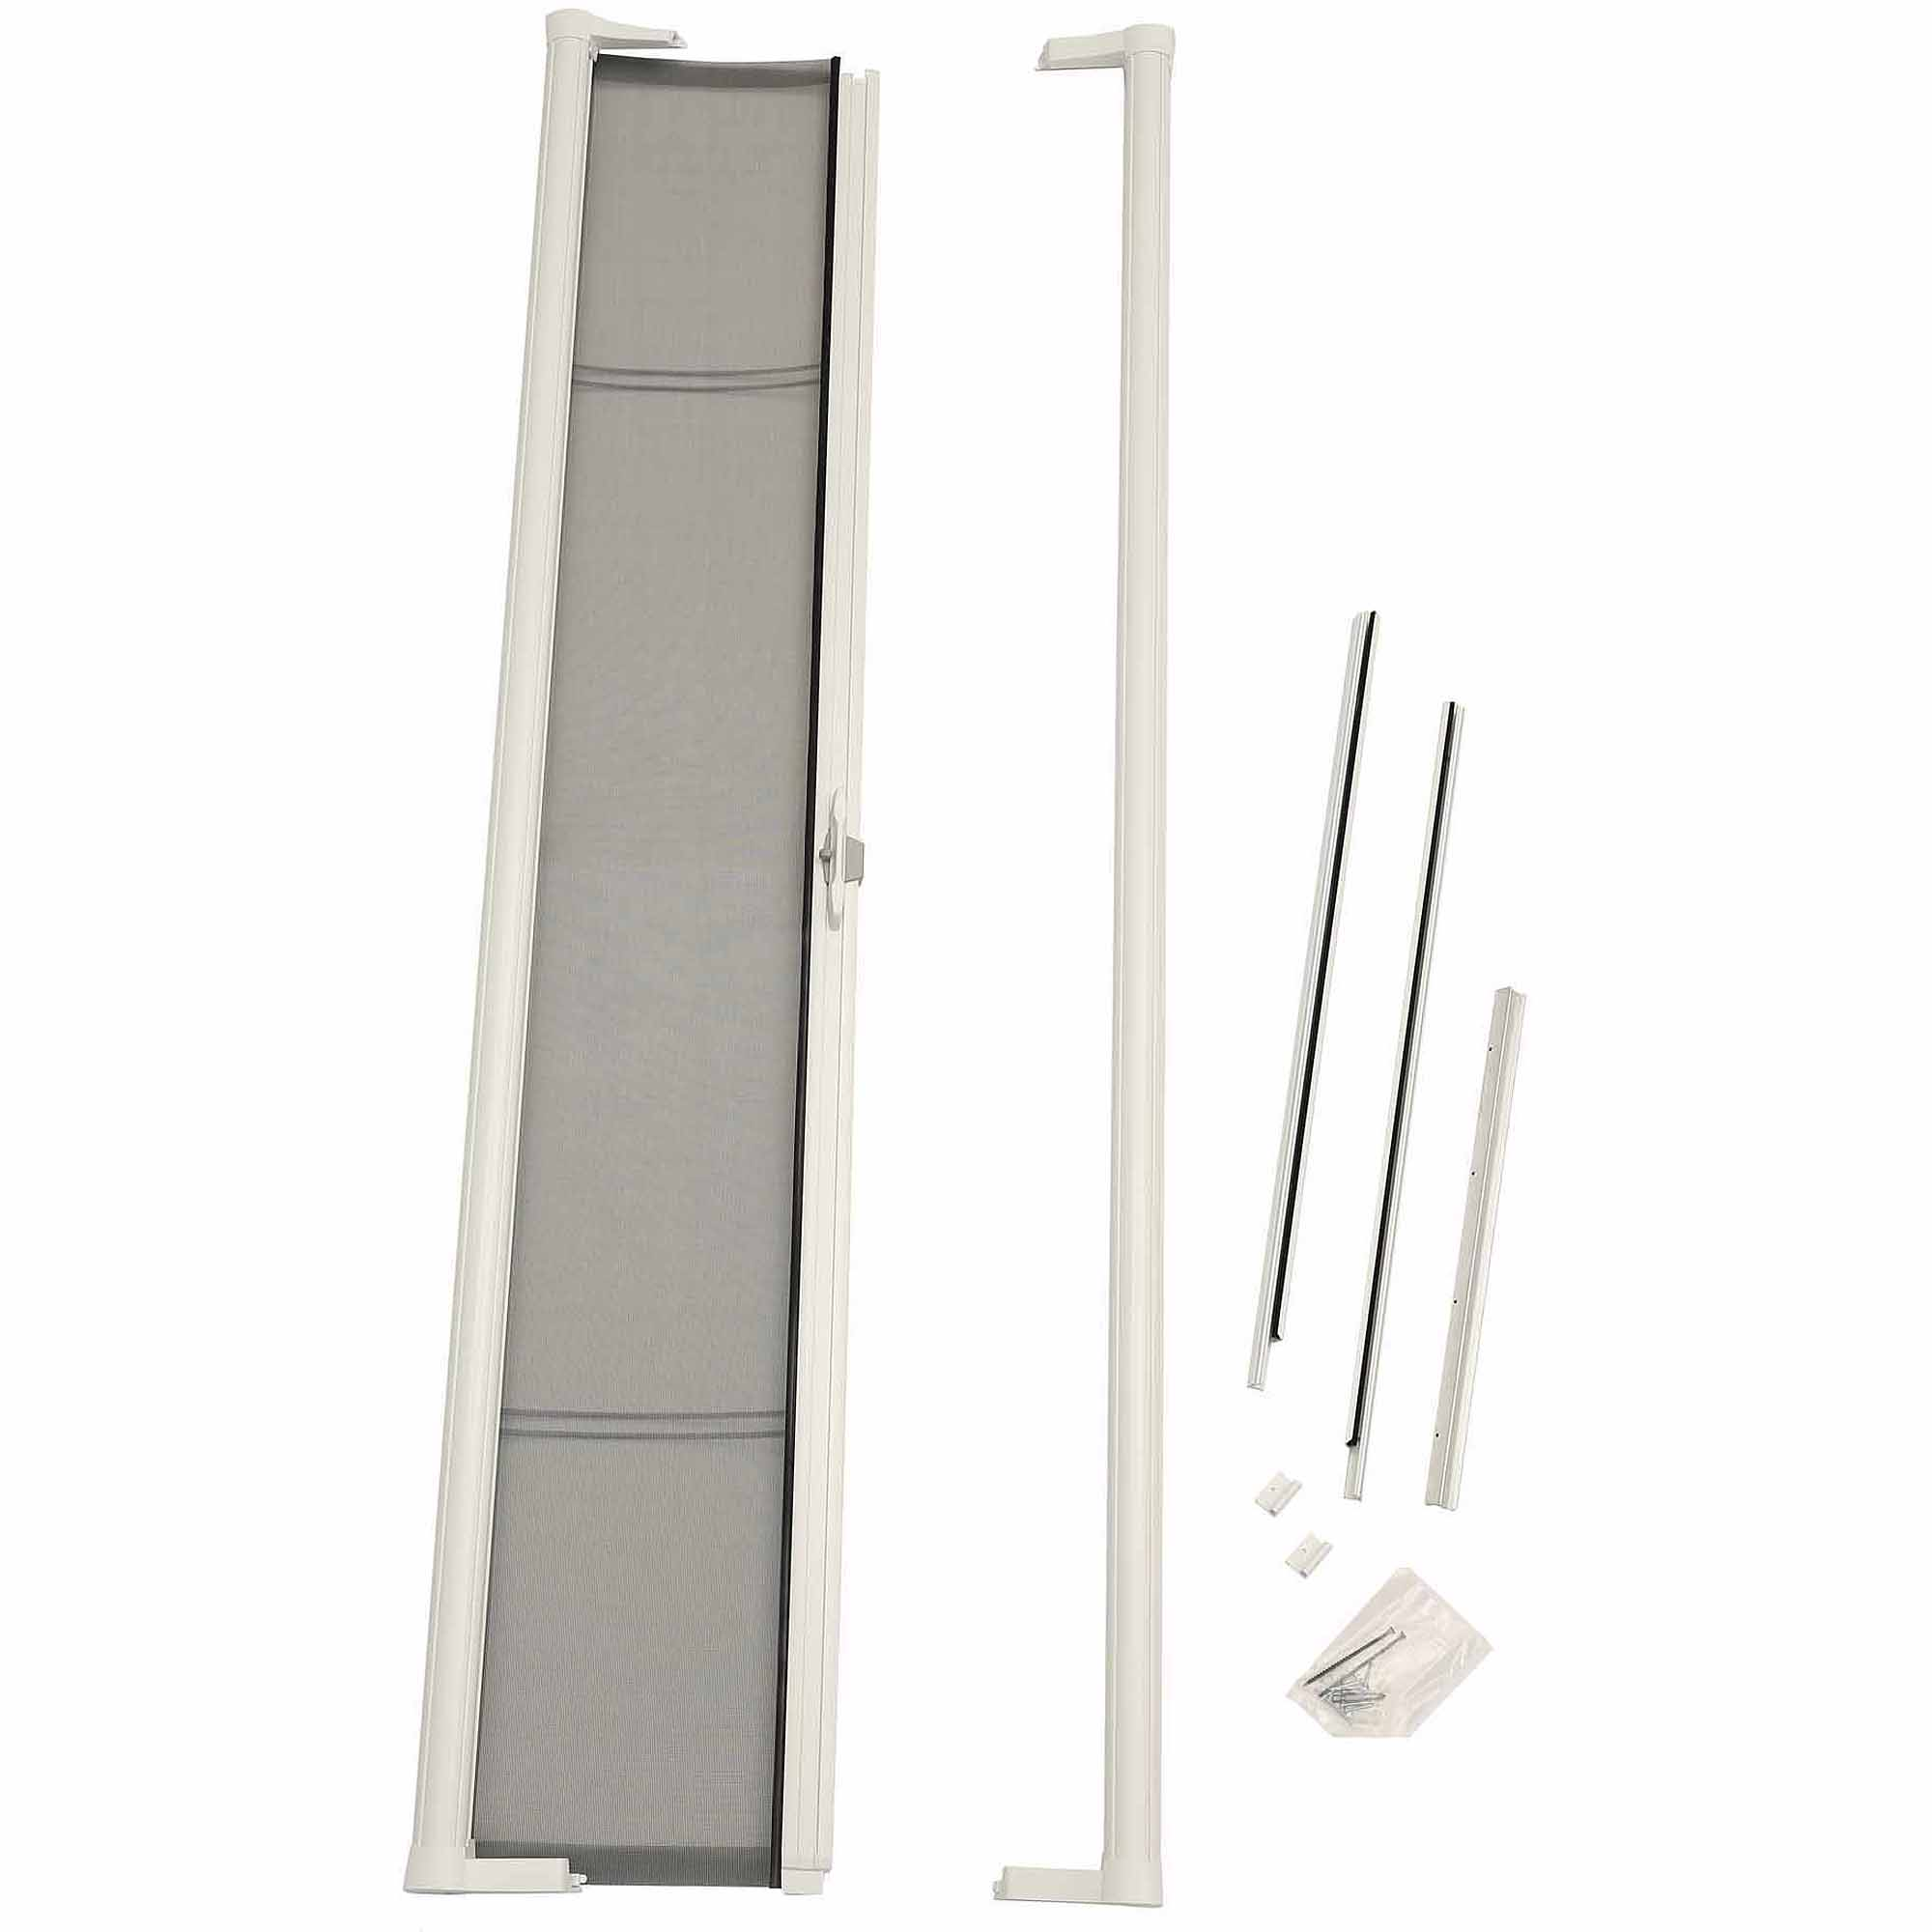 "ODL Brisa White Sliding Retractable Screen for Sliding 78"" Doors"